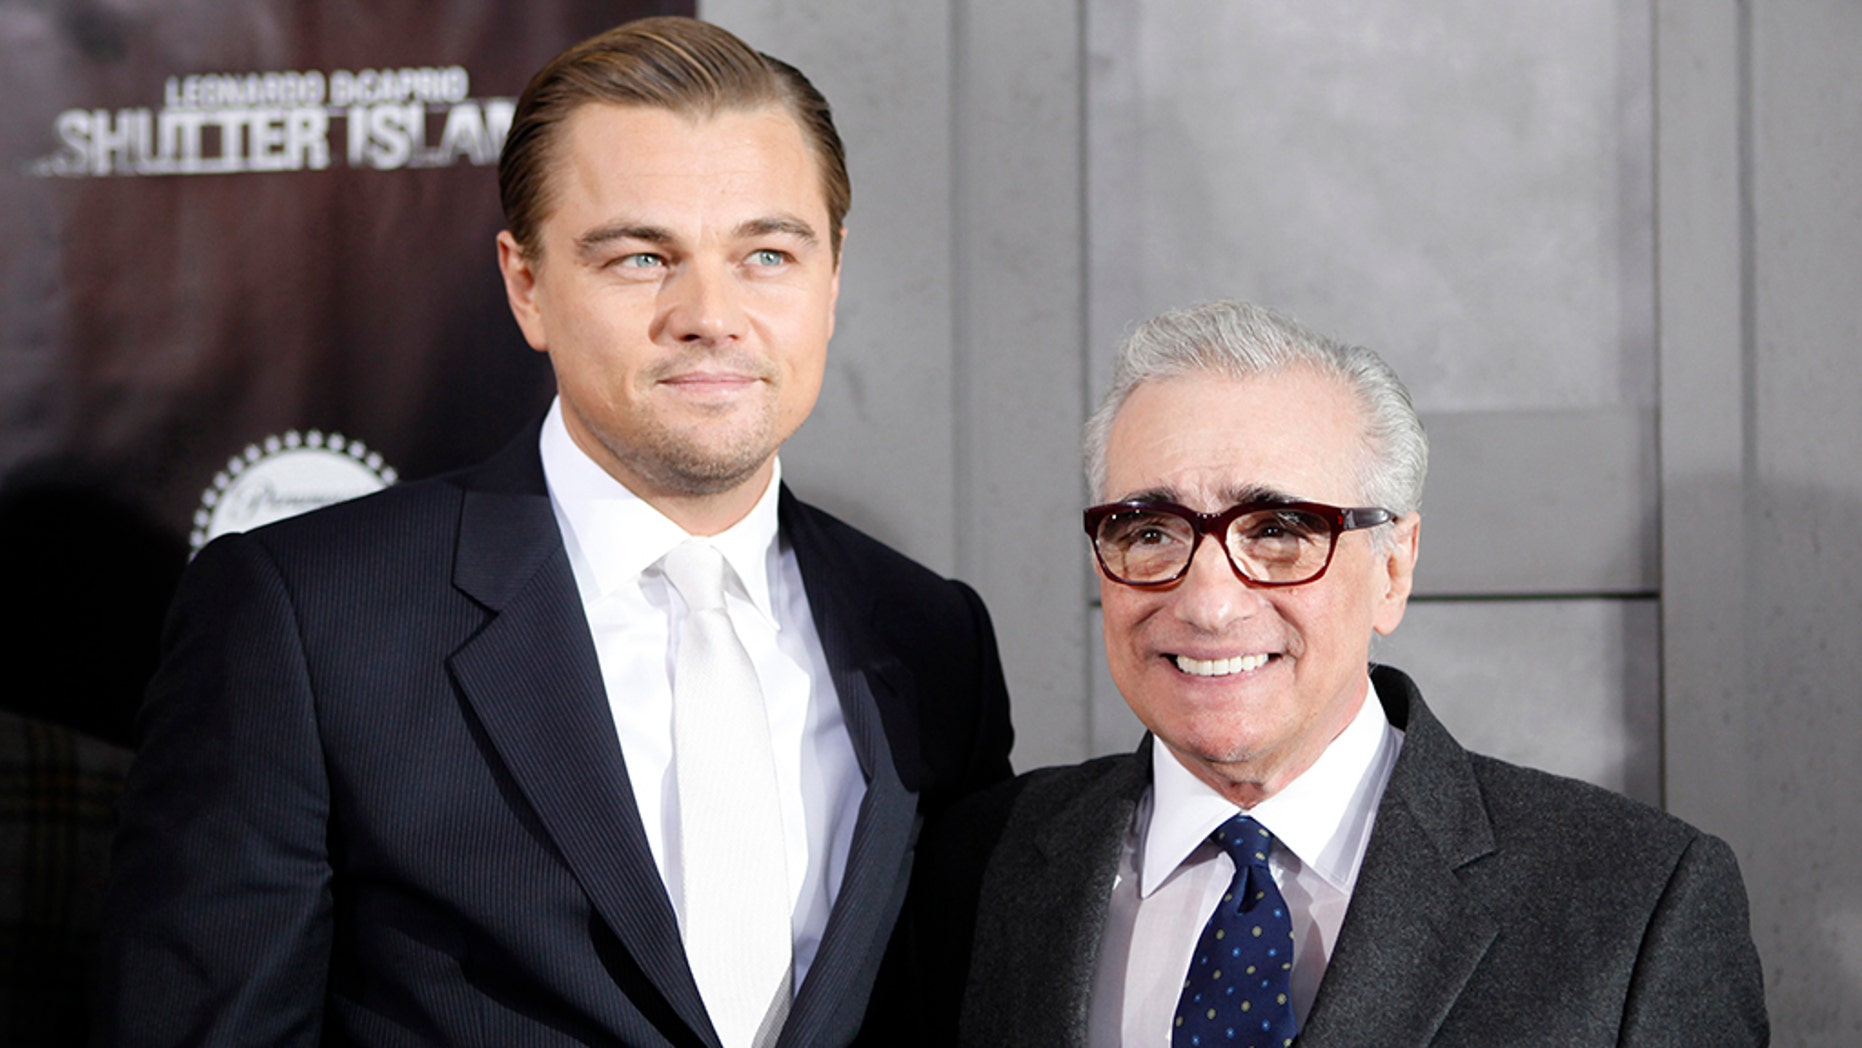 Leonardo DiCaprio and Martin Scorsese are teaming up again for a new film. REUTERS/Natalie Behring